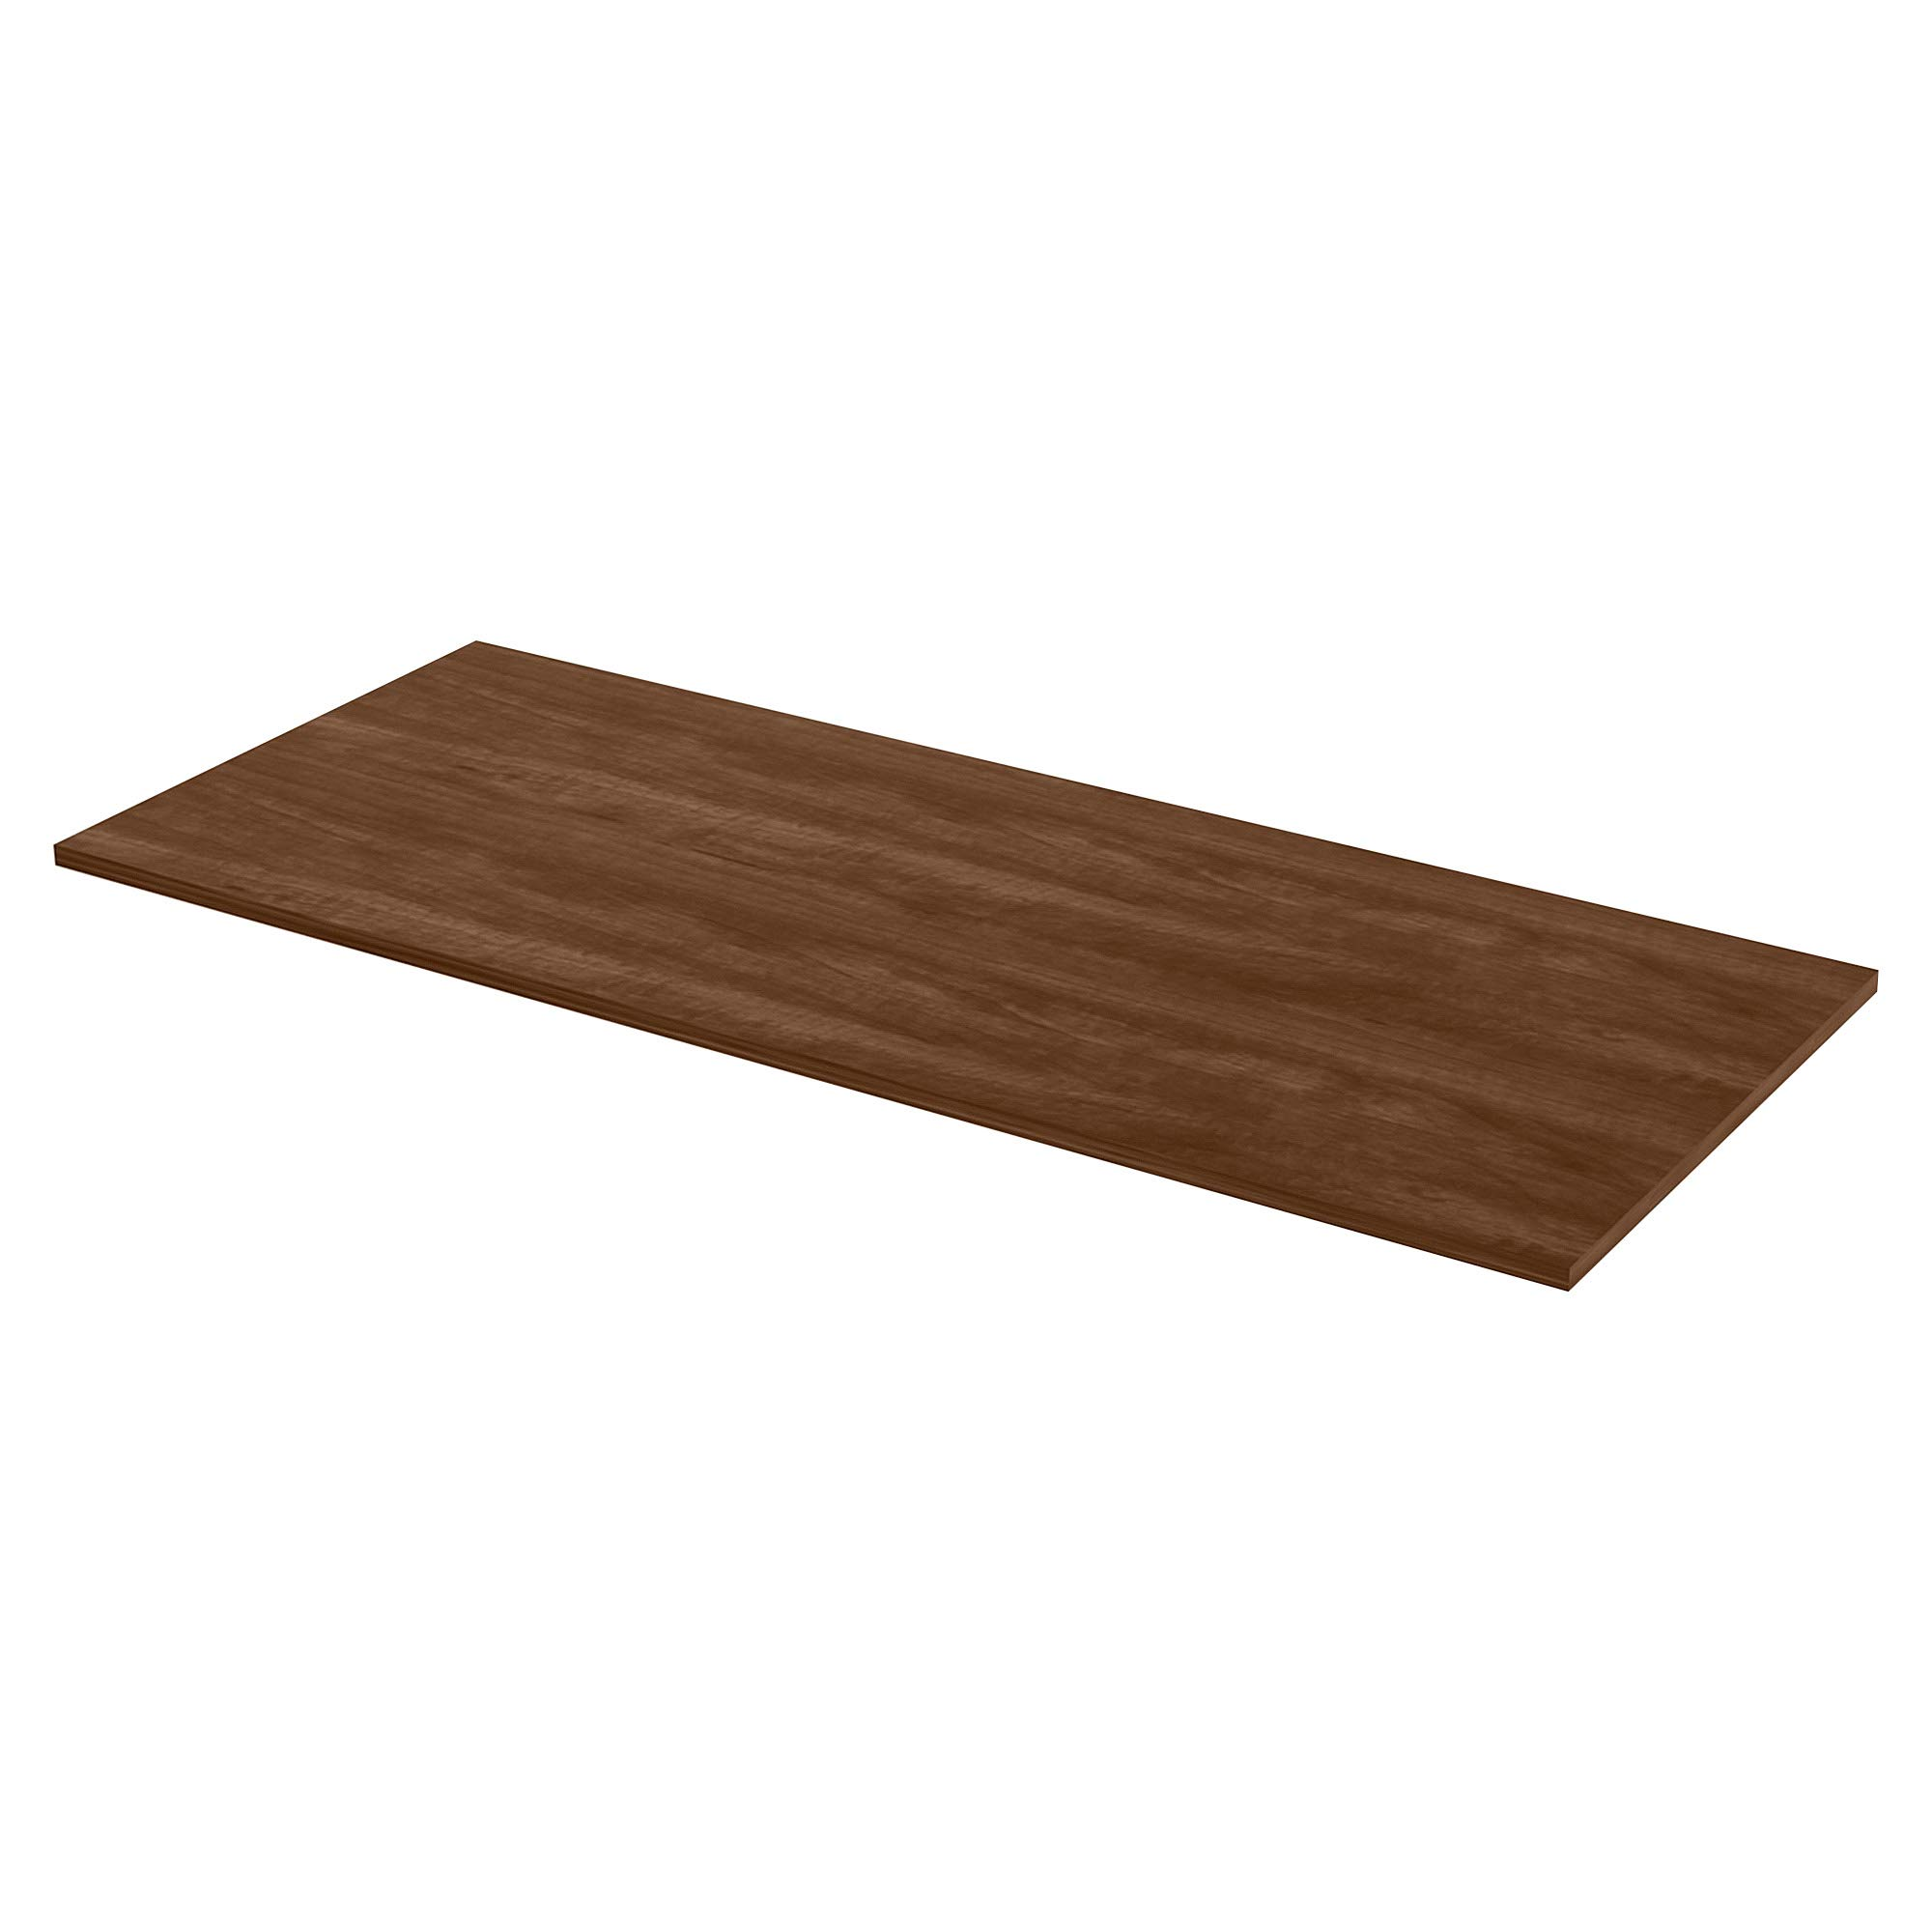 Lorell 34406 Active Office Table Top, Cherry,Laminated